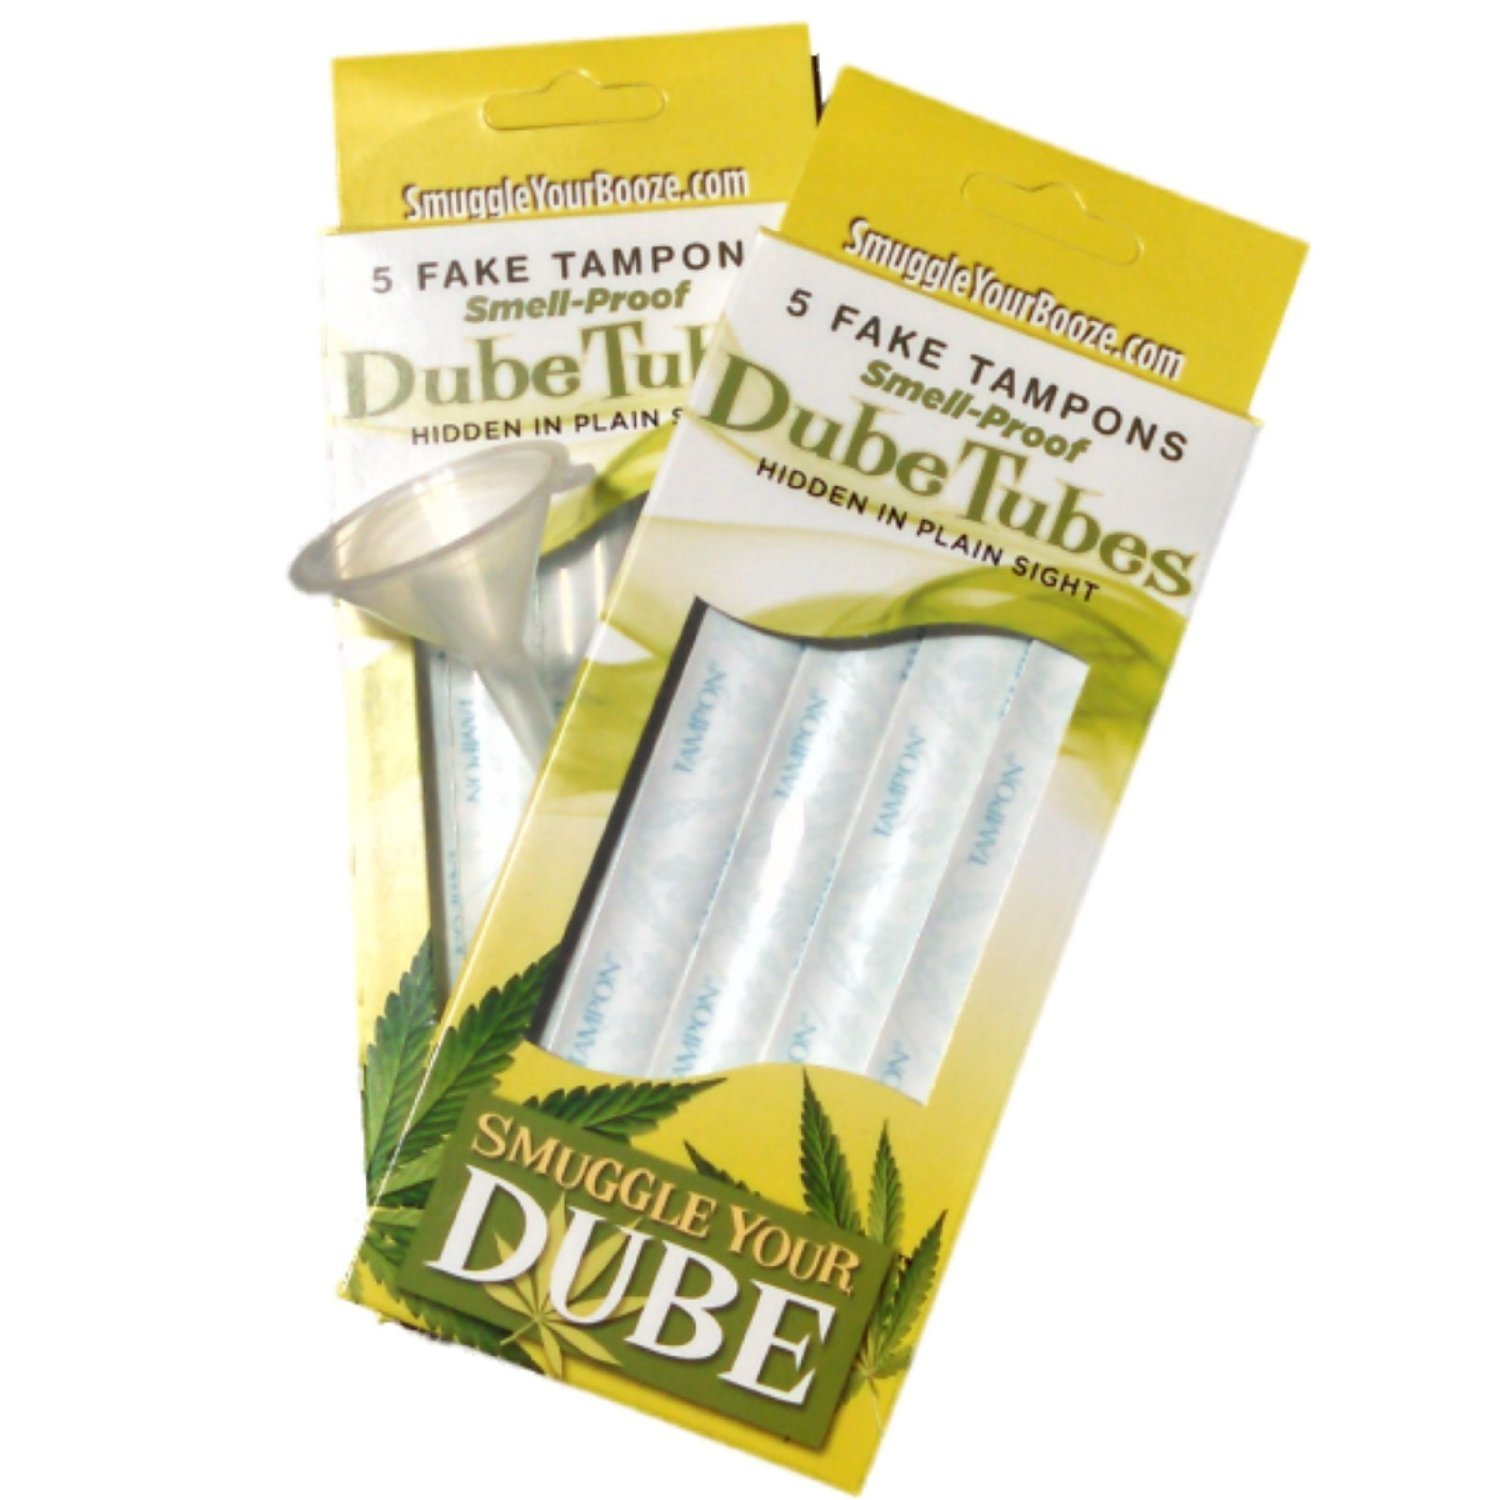 Smuggle Your Booze SYD-DT Smuggle Dube Tubes-Hide in Plain Sight, Smell Proof Fake Tampons with Wrappers. Holds Liquids Too. (2 Pack, Clear)